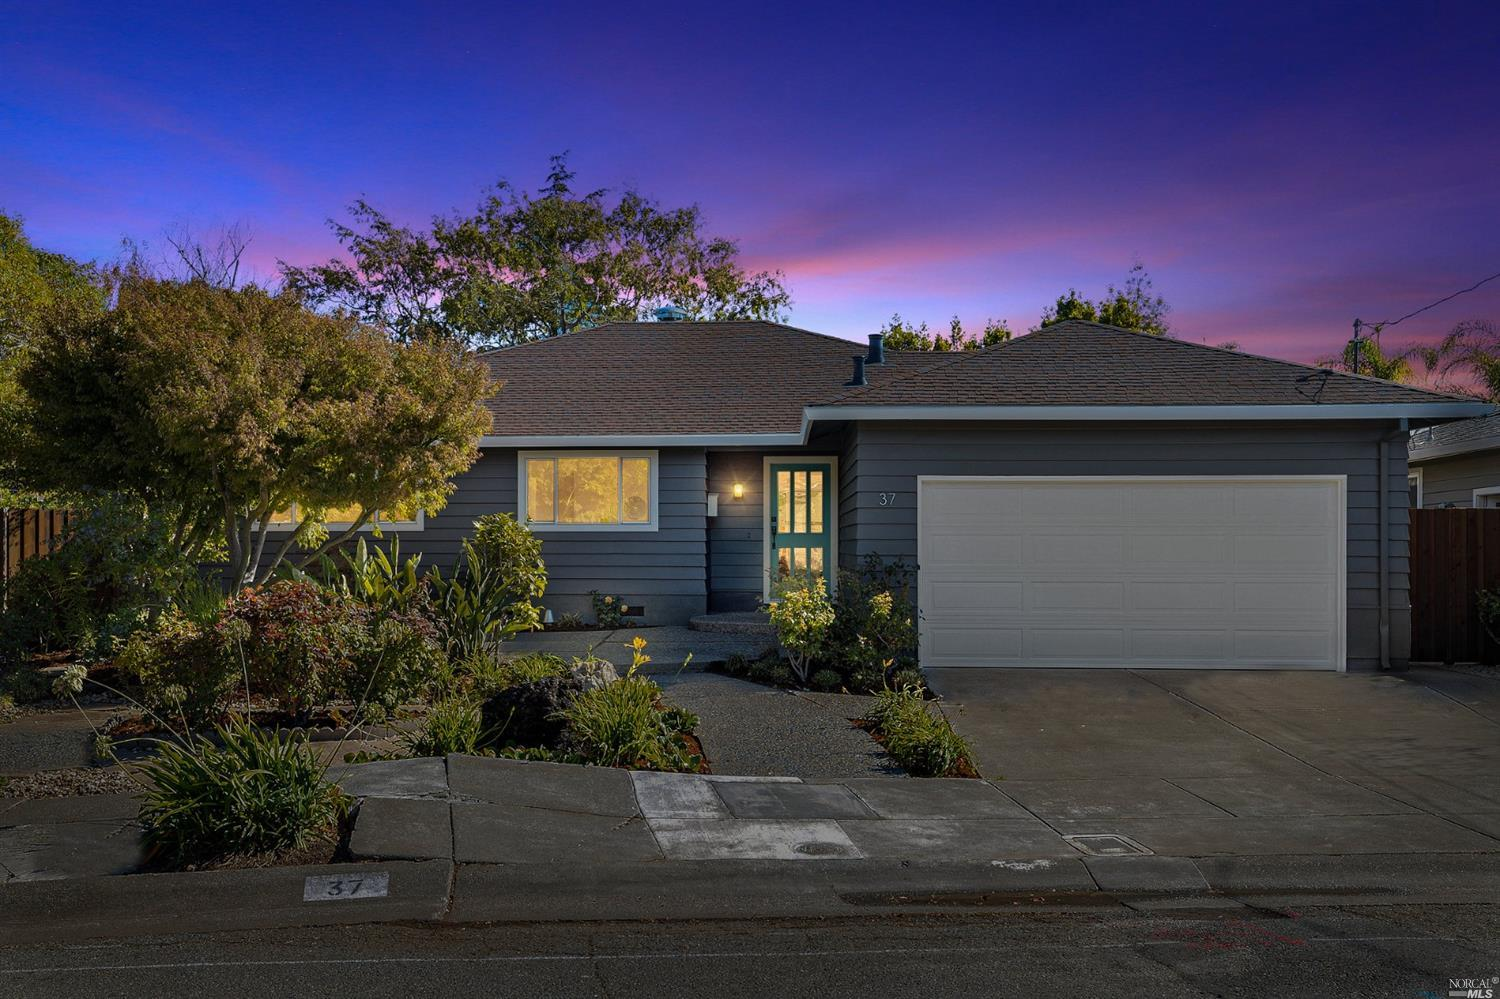 37 Flying Cloud Course, Corte Madera, CA 94925